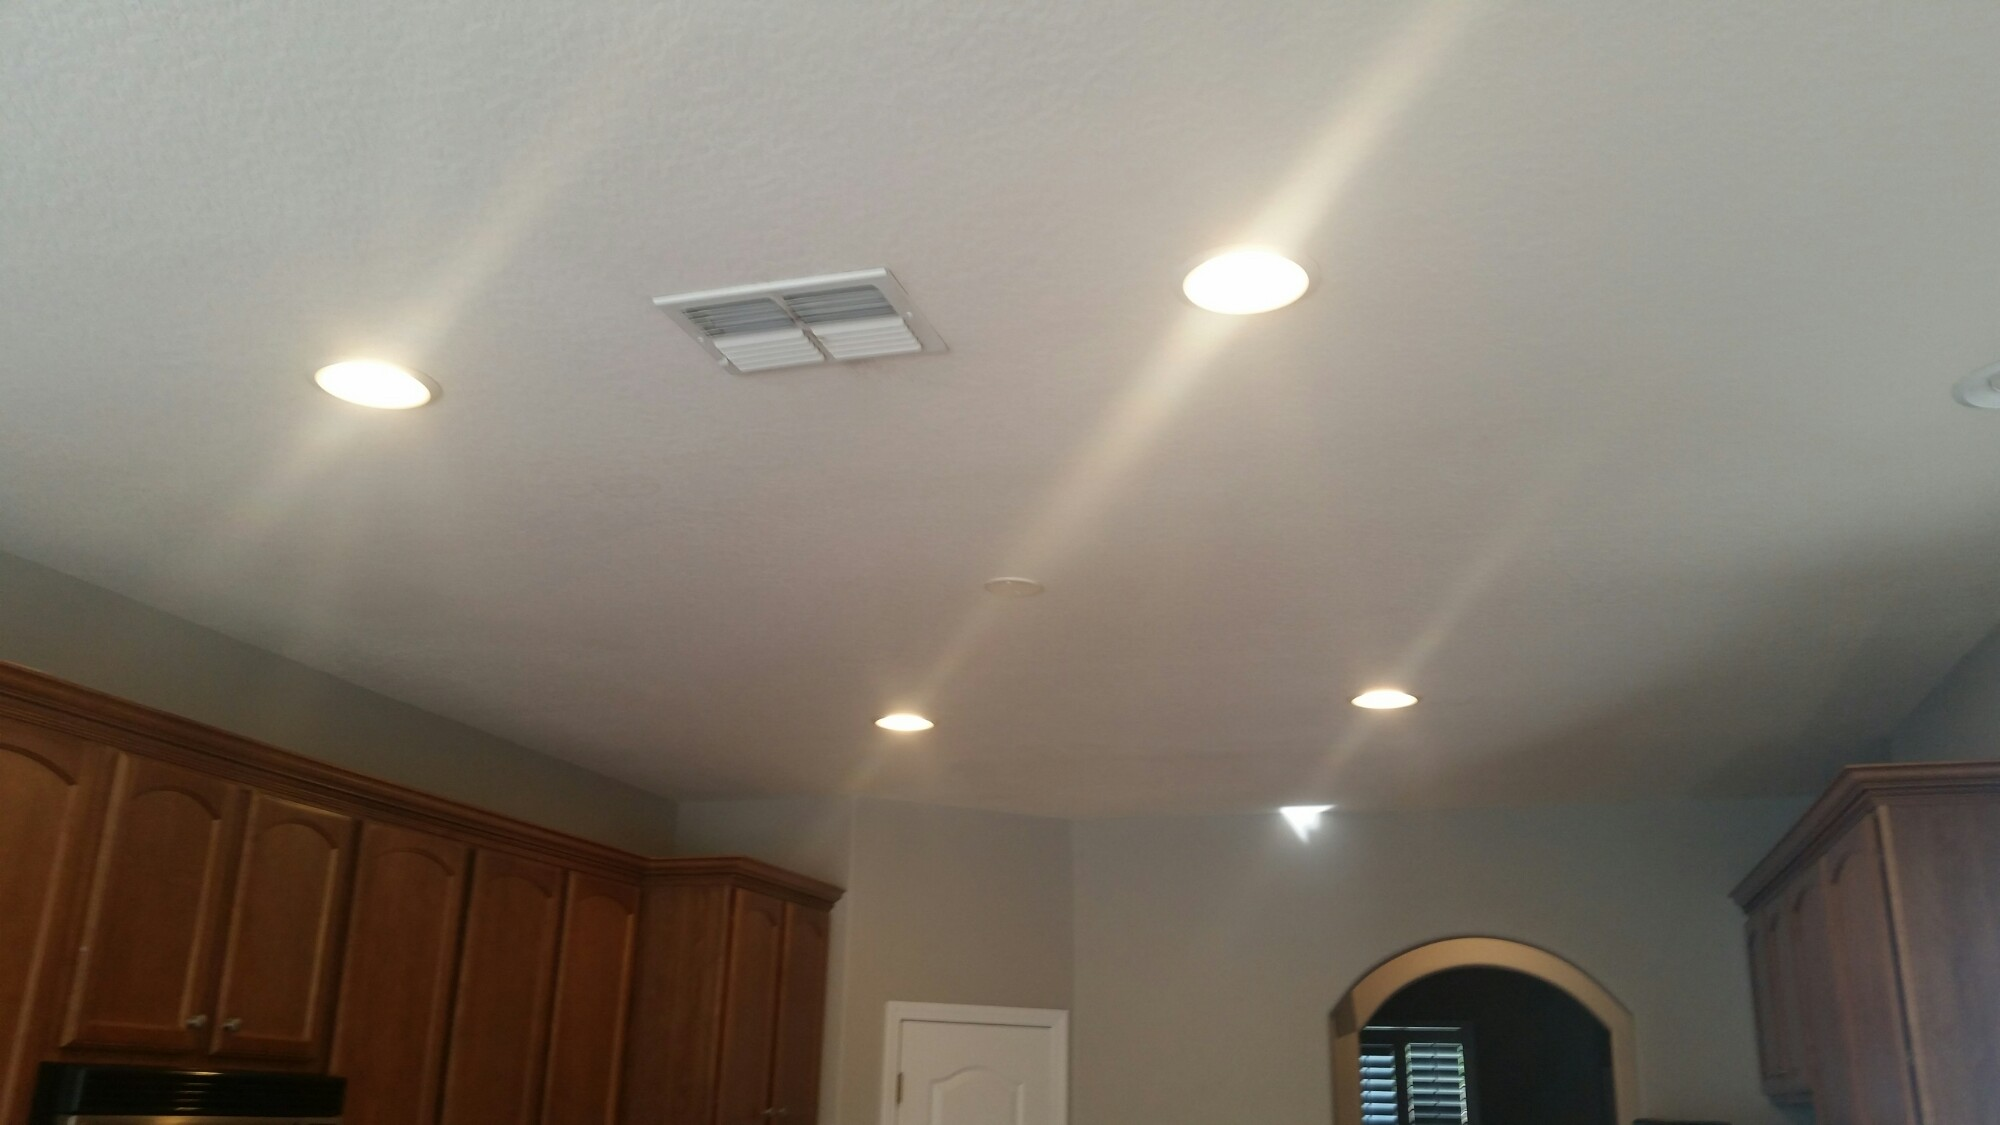 Blog posts ewire solutions ewire solutions installs chandeliers and lighting fixtures in your home or business arubaitofo Gallery